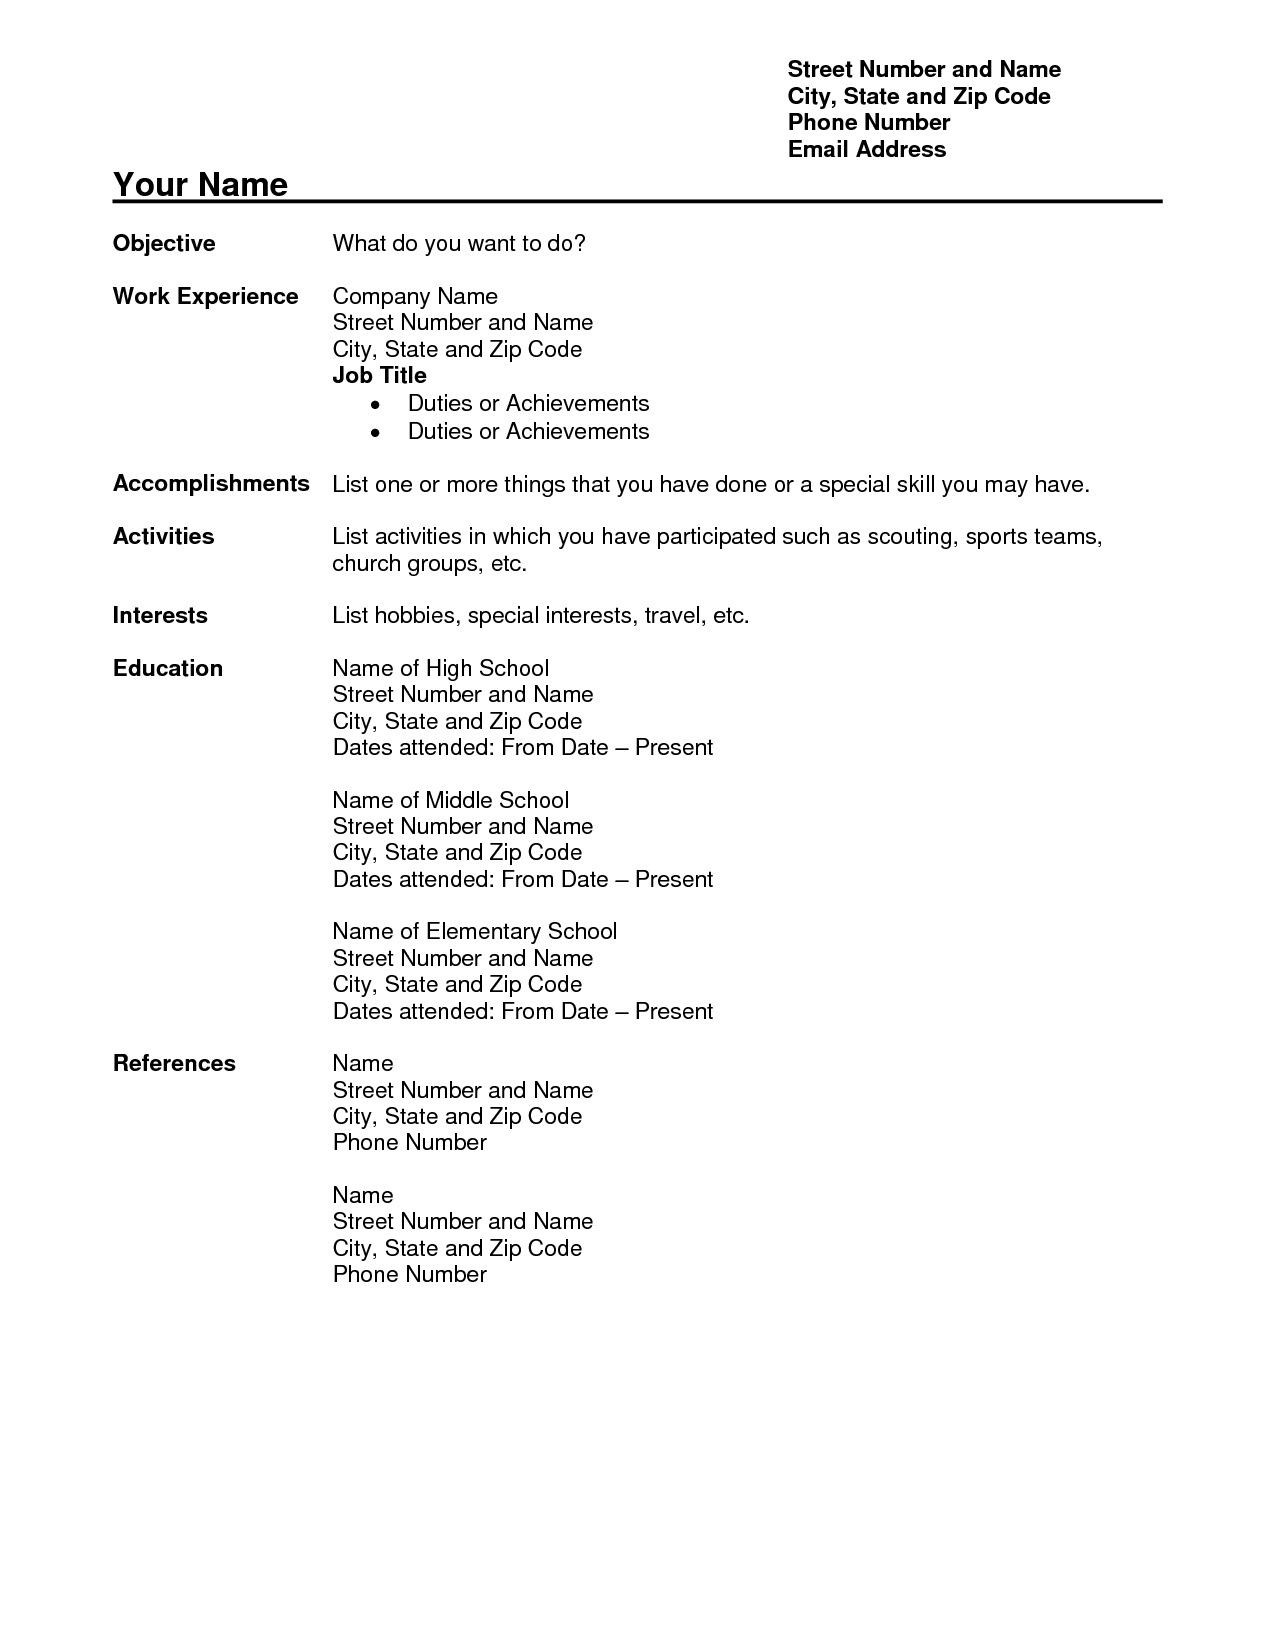 free teacher resume templates download free teacher resume templates download free teacher resume templates microsoft - Free Downloadable Resume Templates For Word